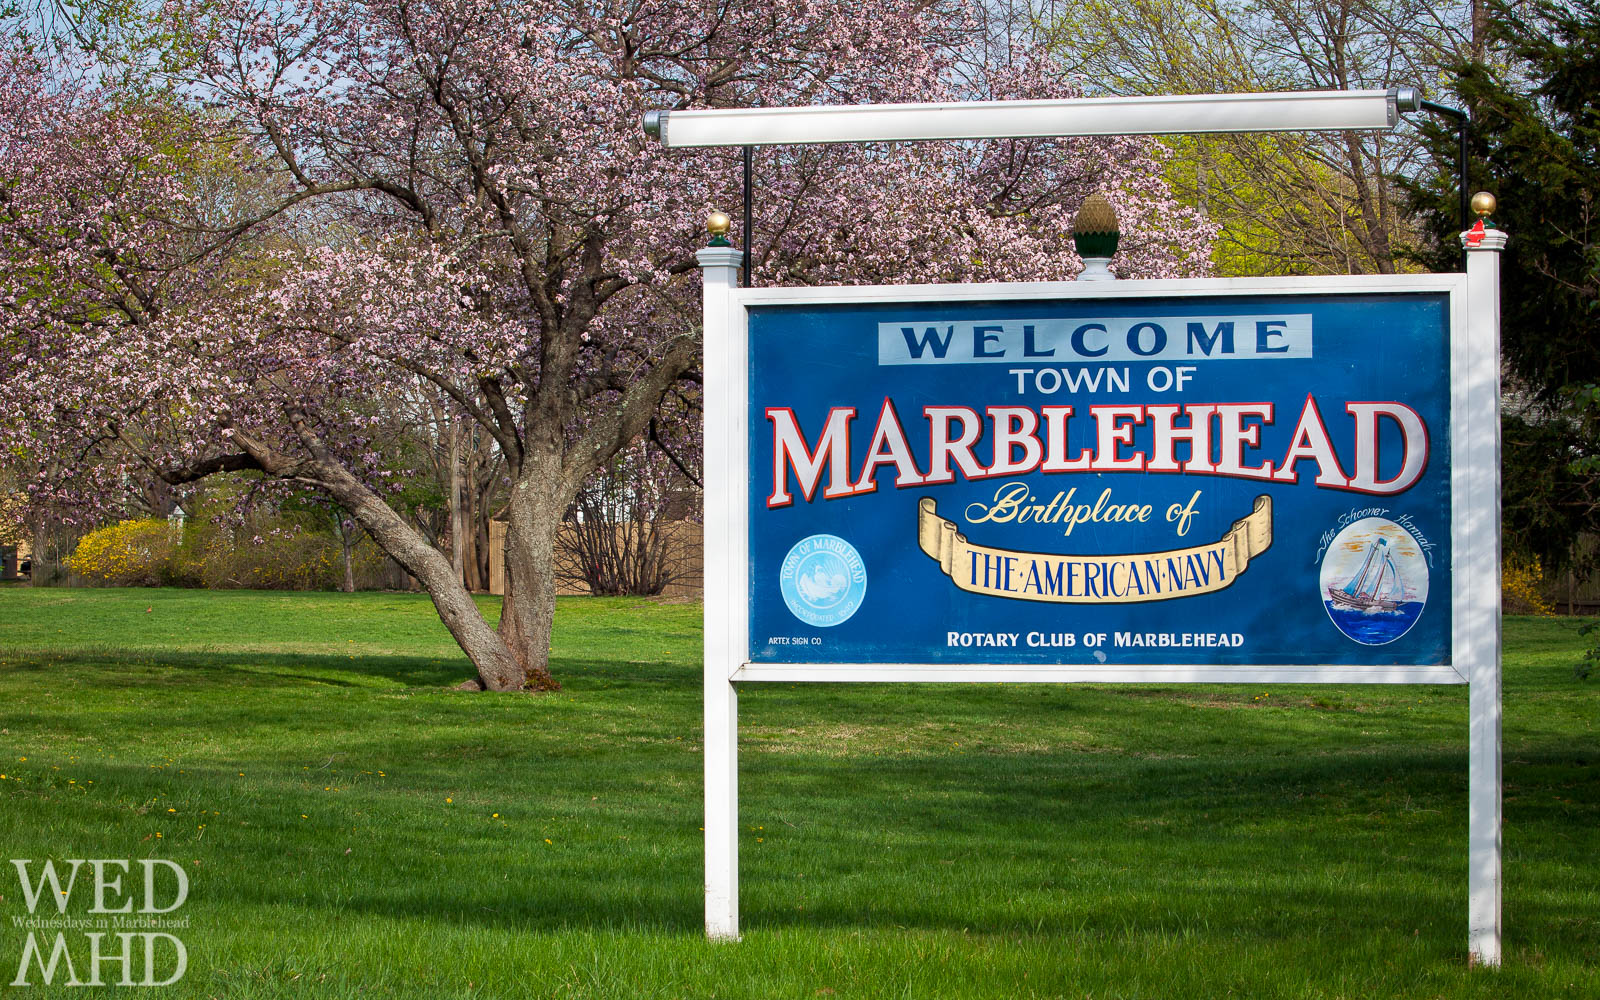 Welcome to the Town of Marblehead